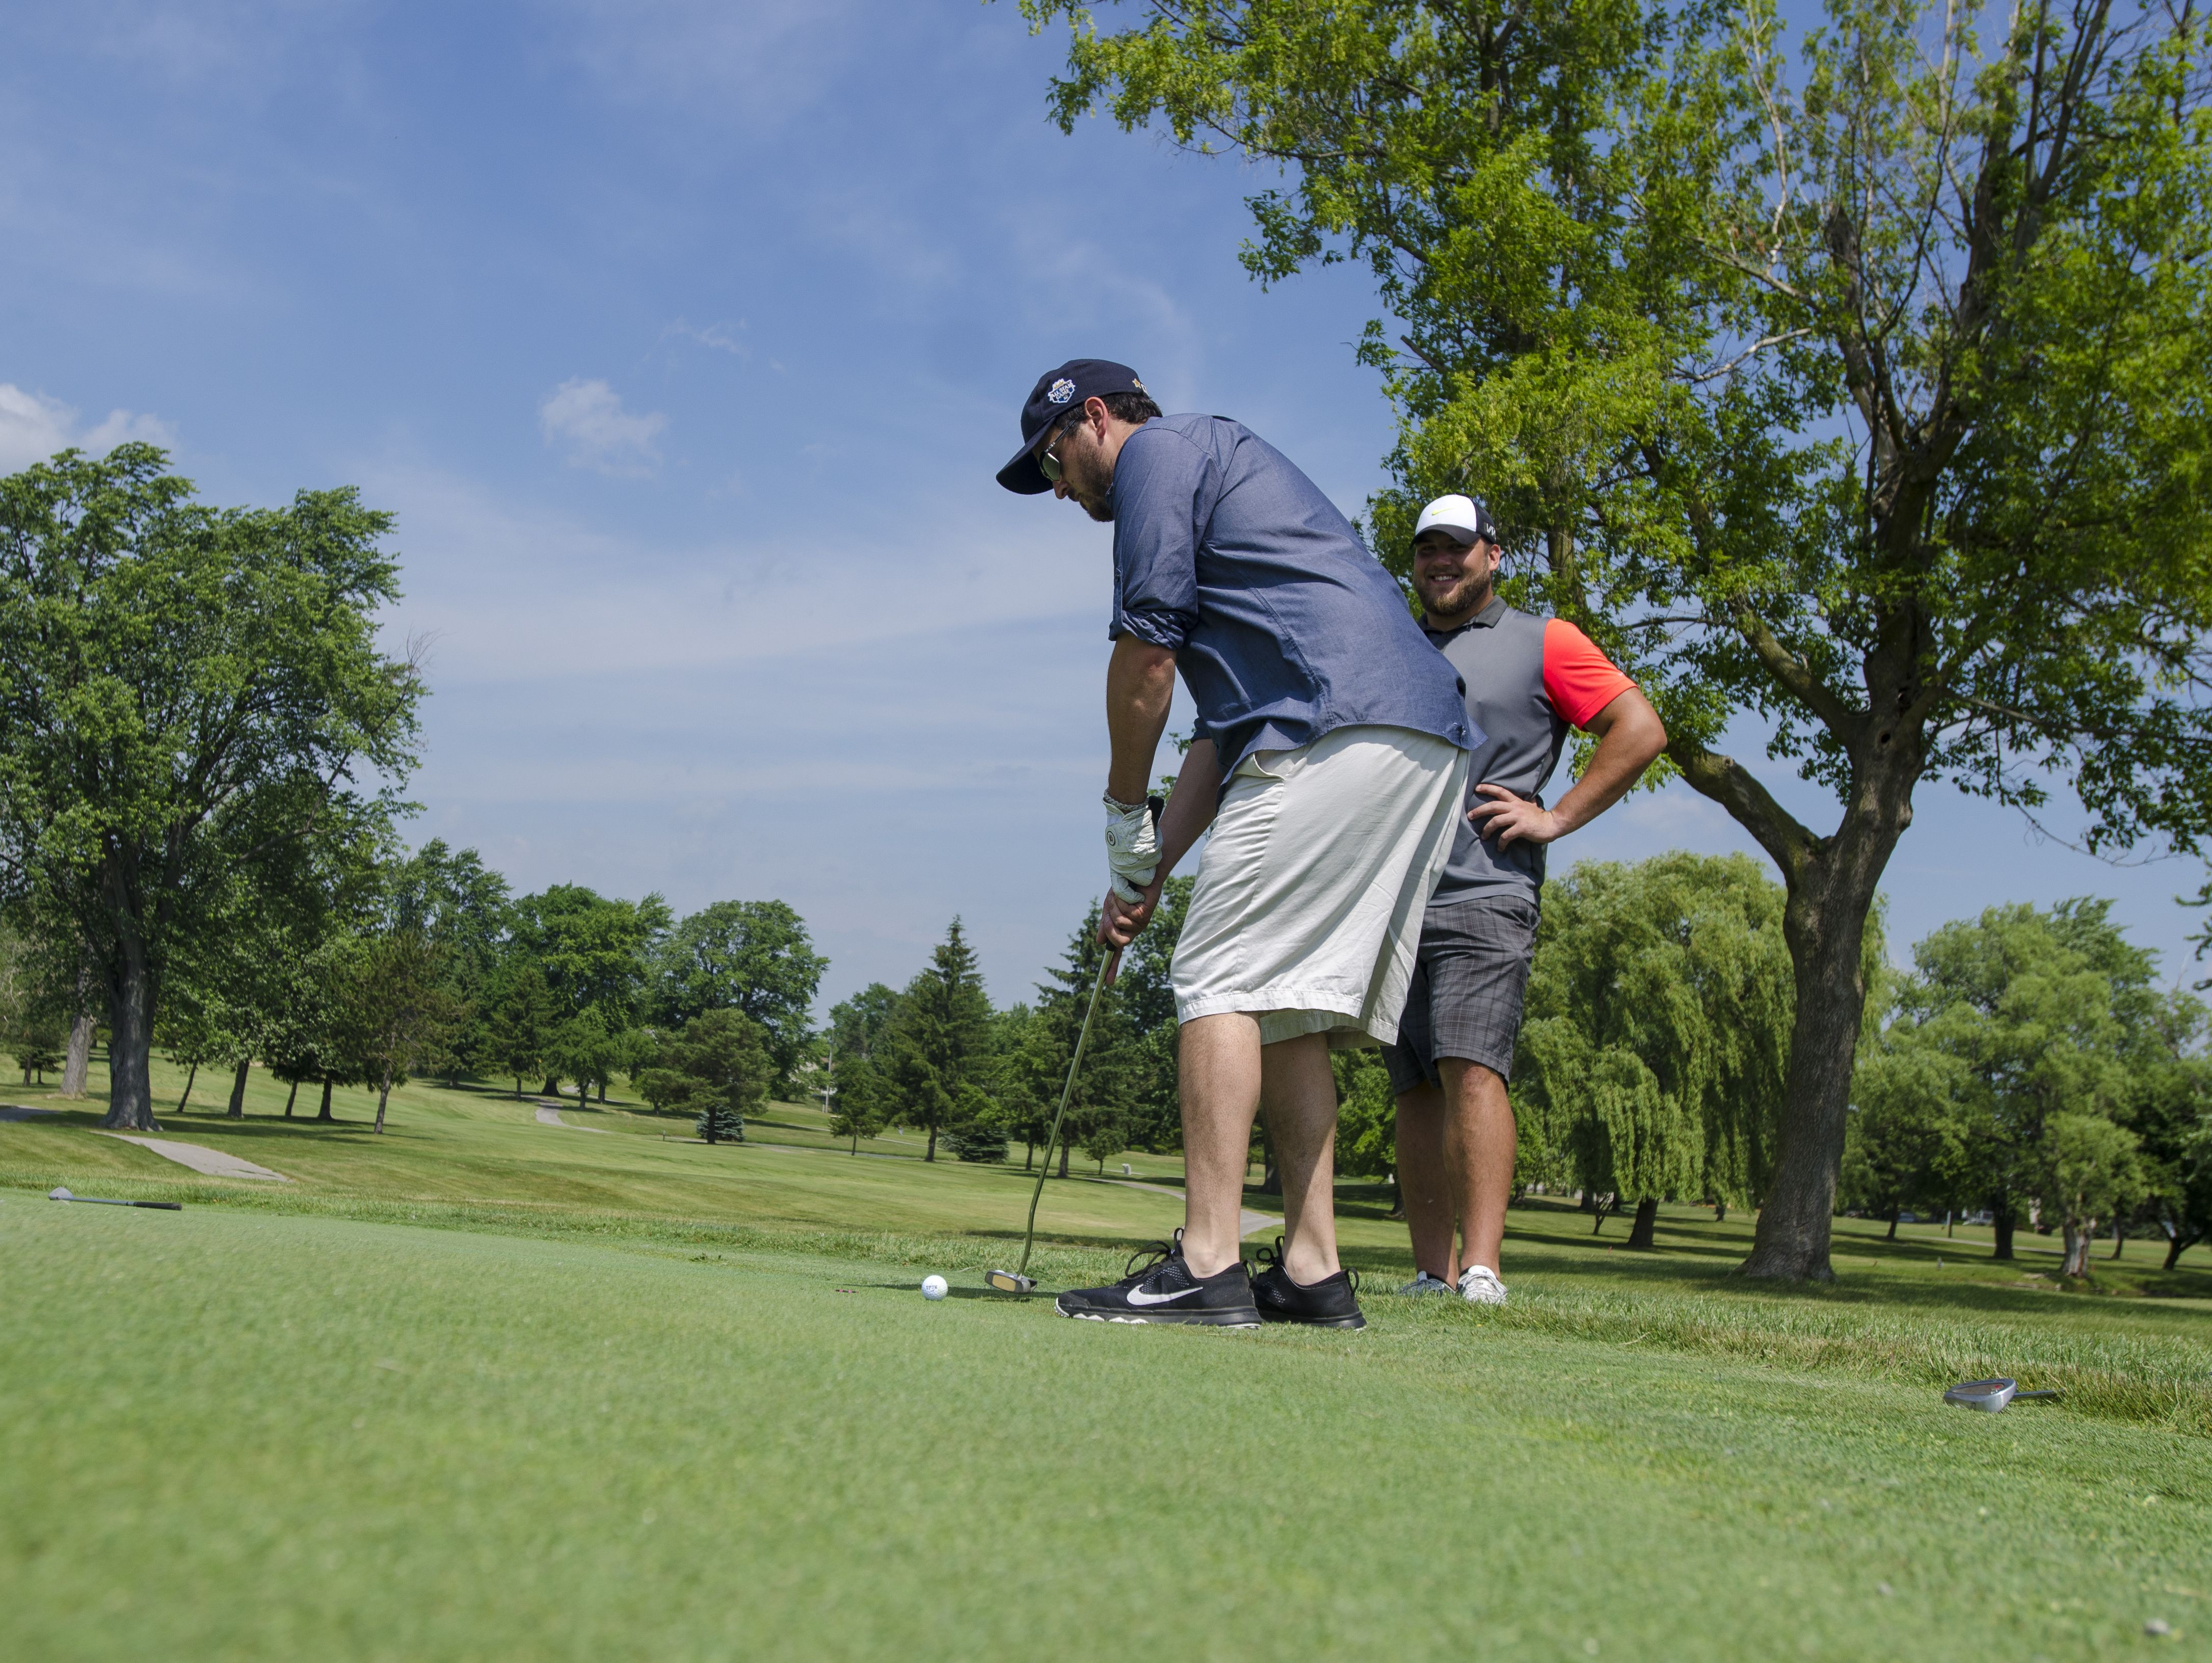 Brent Mireau, of St. Clair, readies his putt Monday, June 20, during the Lelito Legacy Golf Outing at St. Clair Golf Cub.